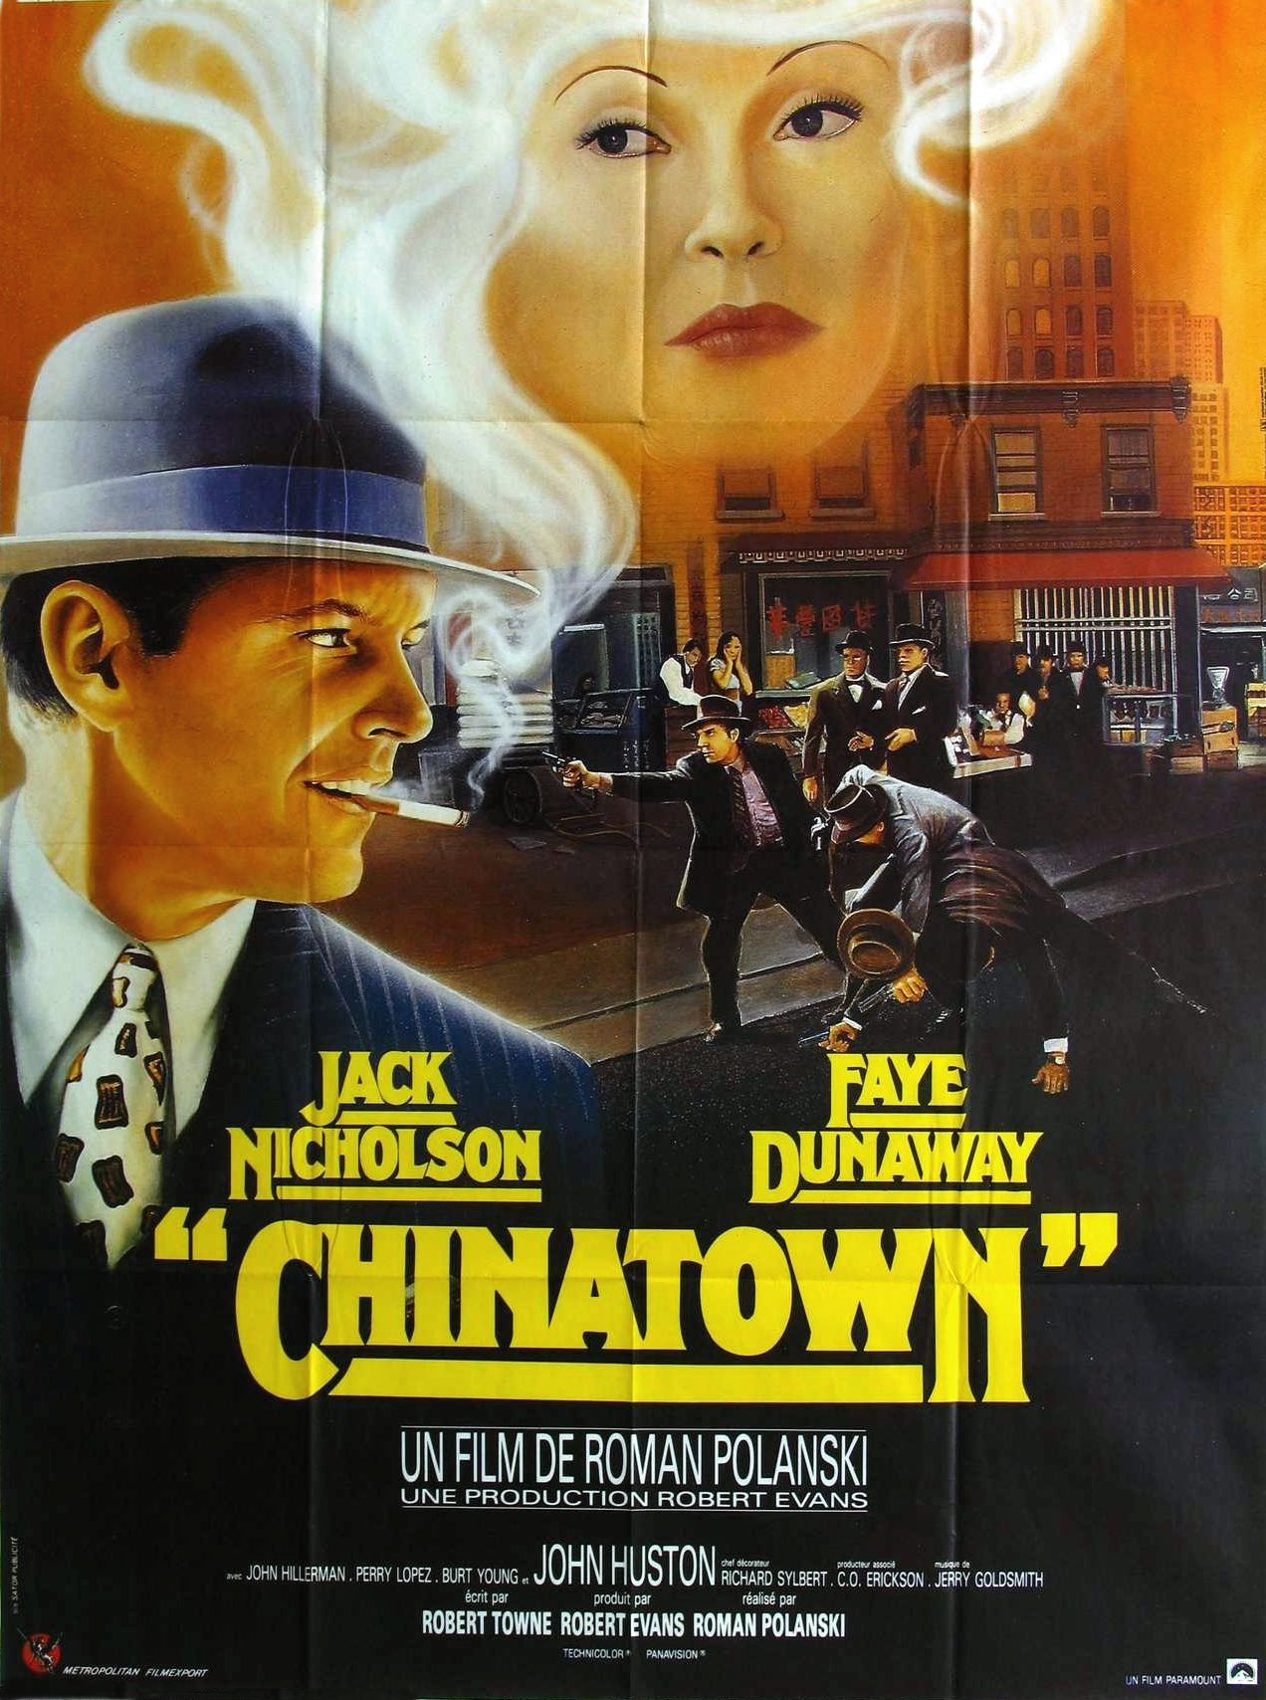 essays on chinatown film Access to over 100,000 complete essays and term papers introduction the chinatown is a film that was directed by roman polanski and released in 1974 in america.